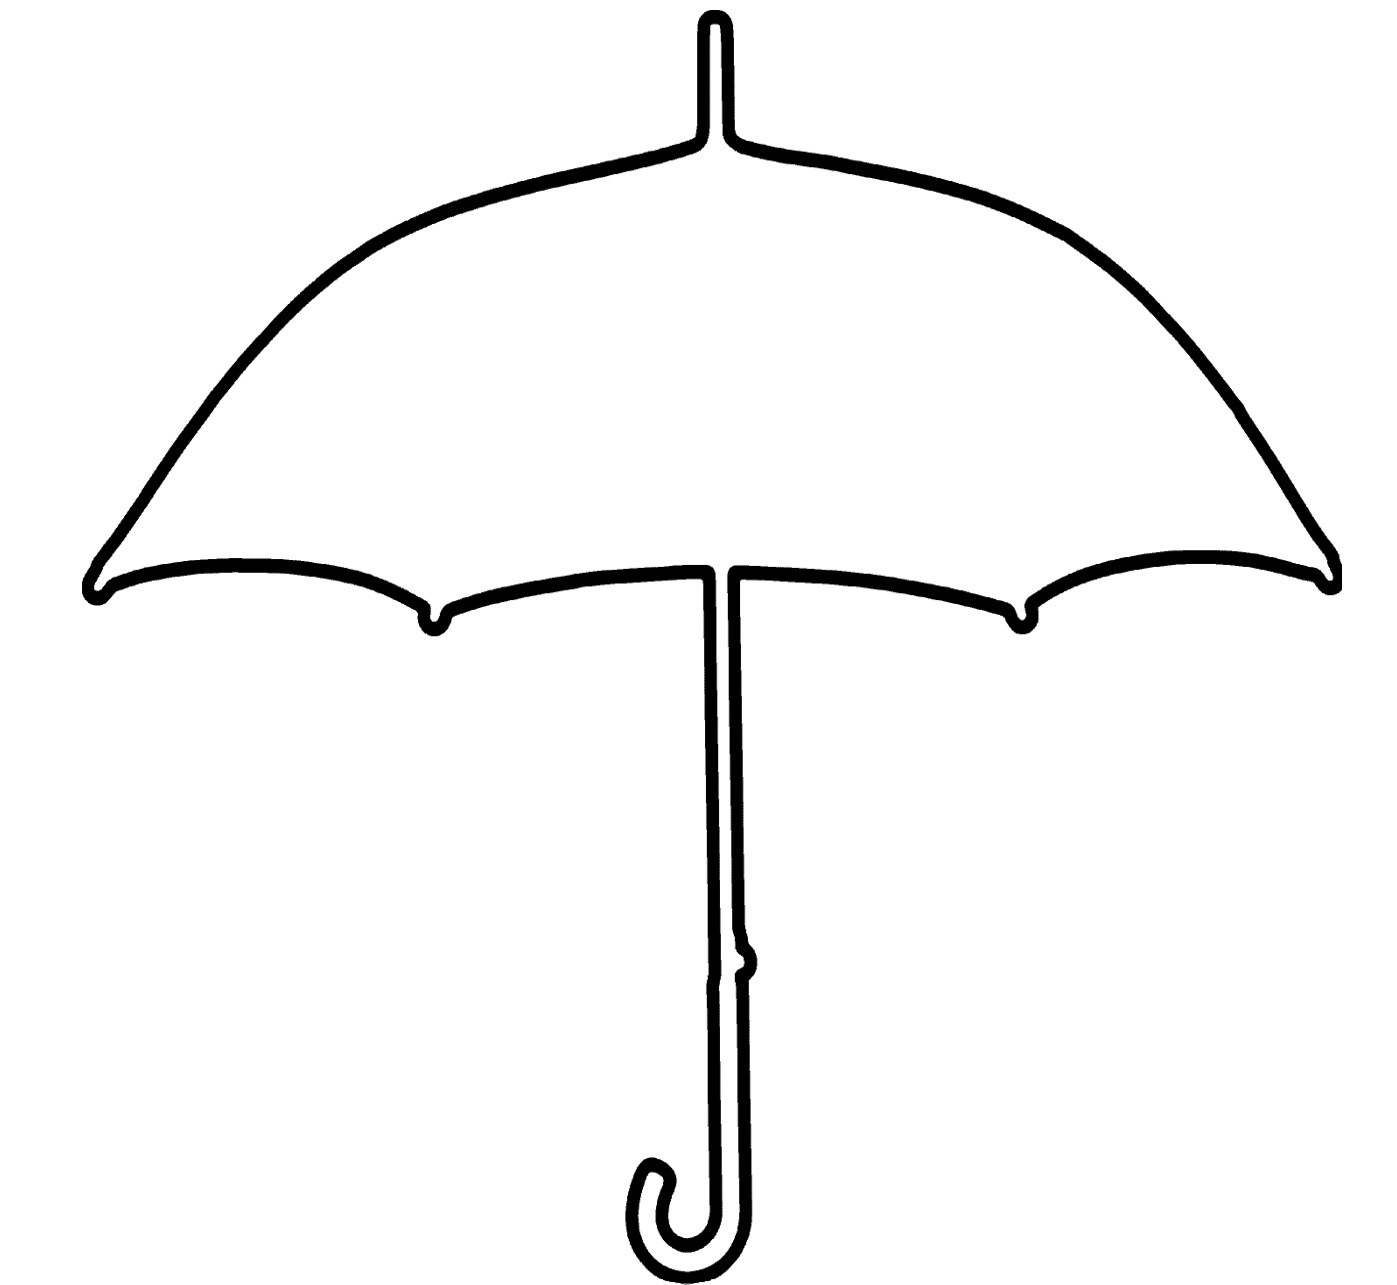 Outline Of A Raindrop